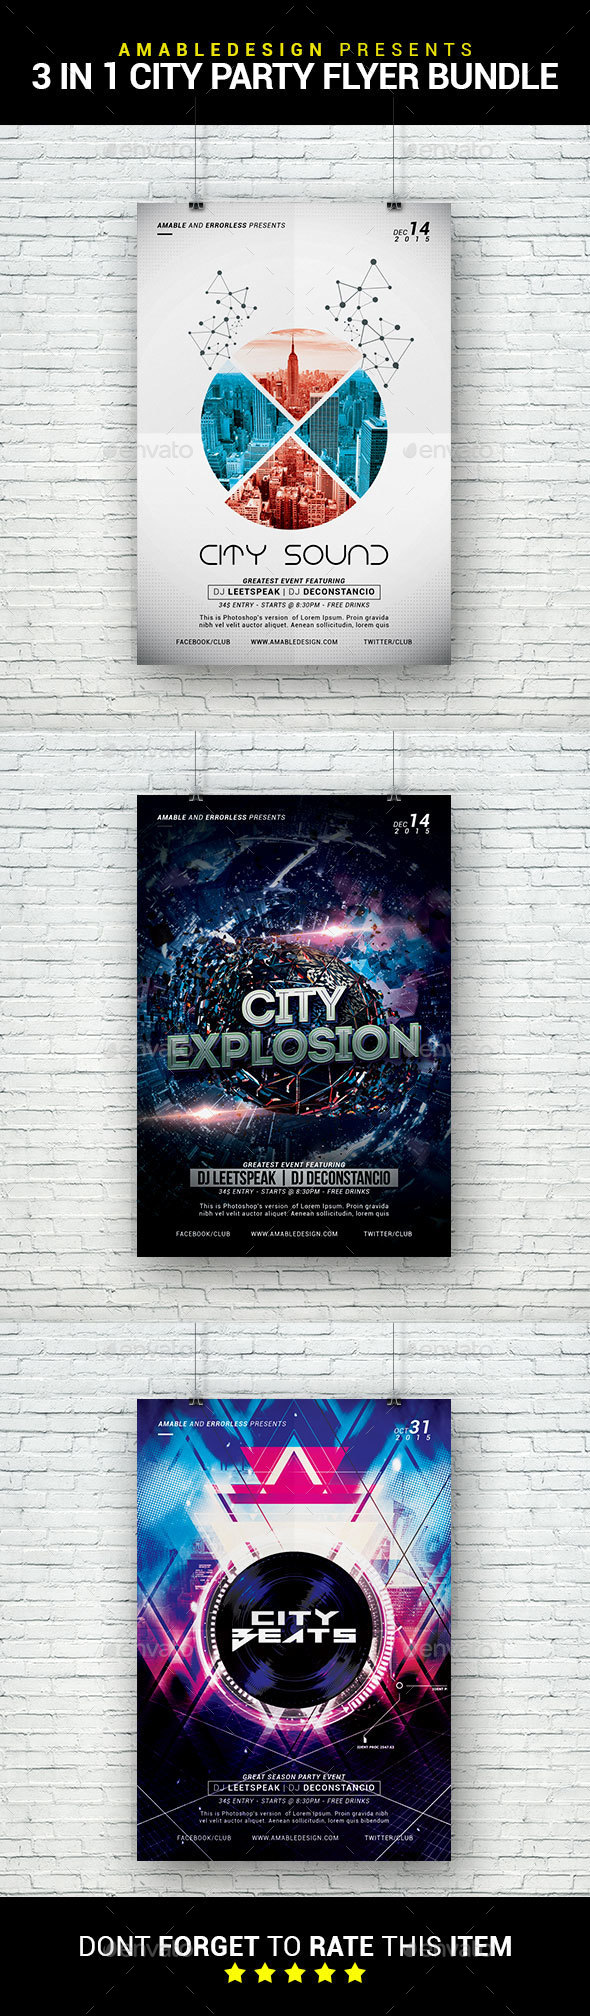 3 in 1 City Party Flyer/Poster Bundle - Clubs & Parties Events